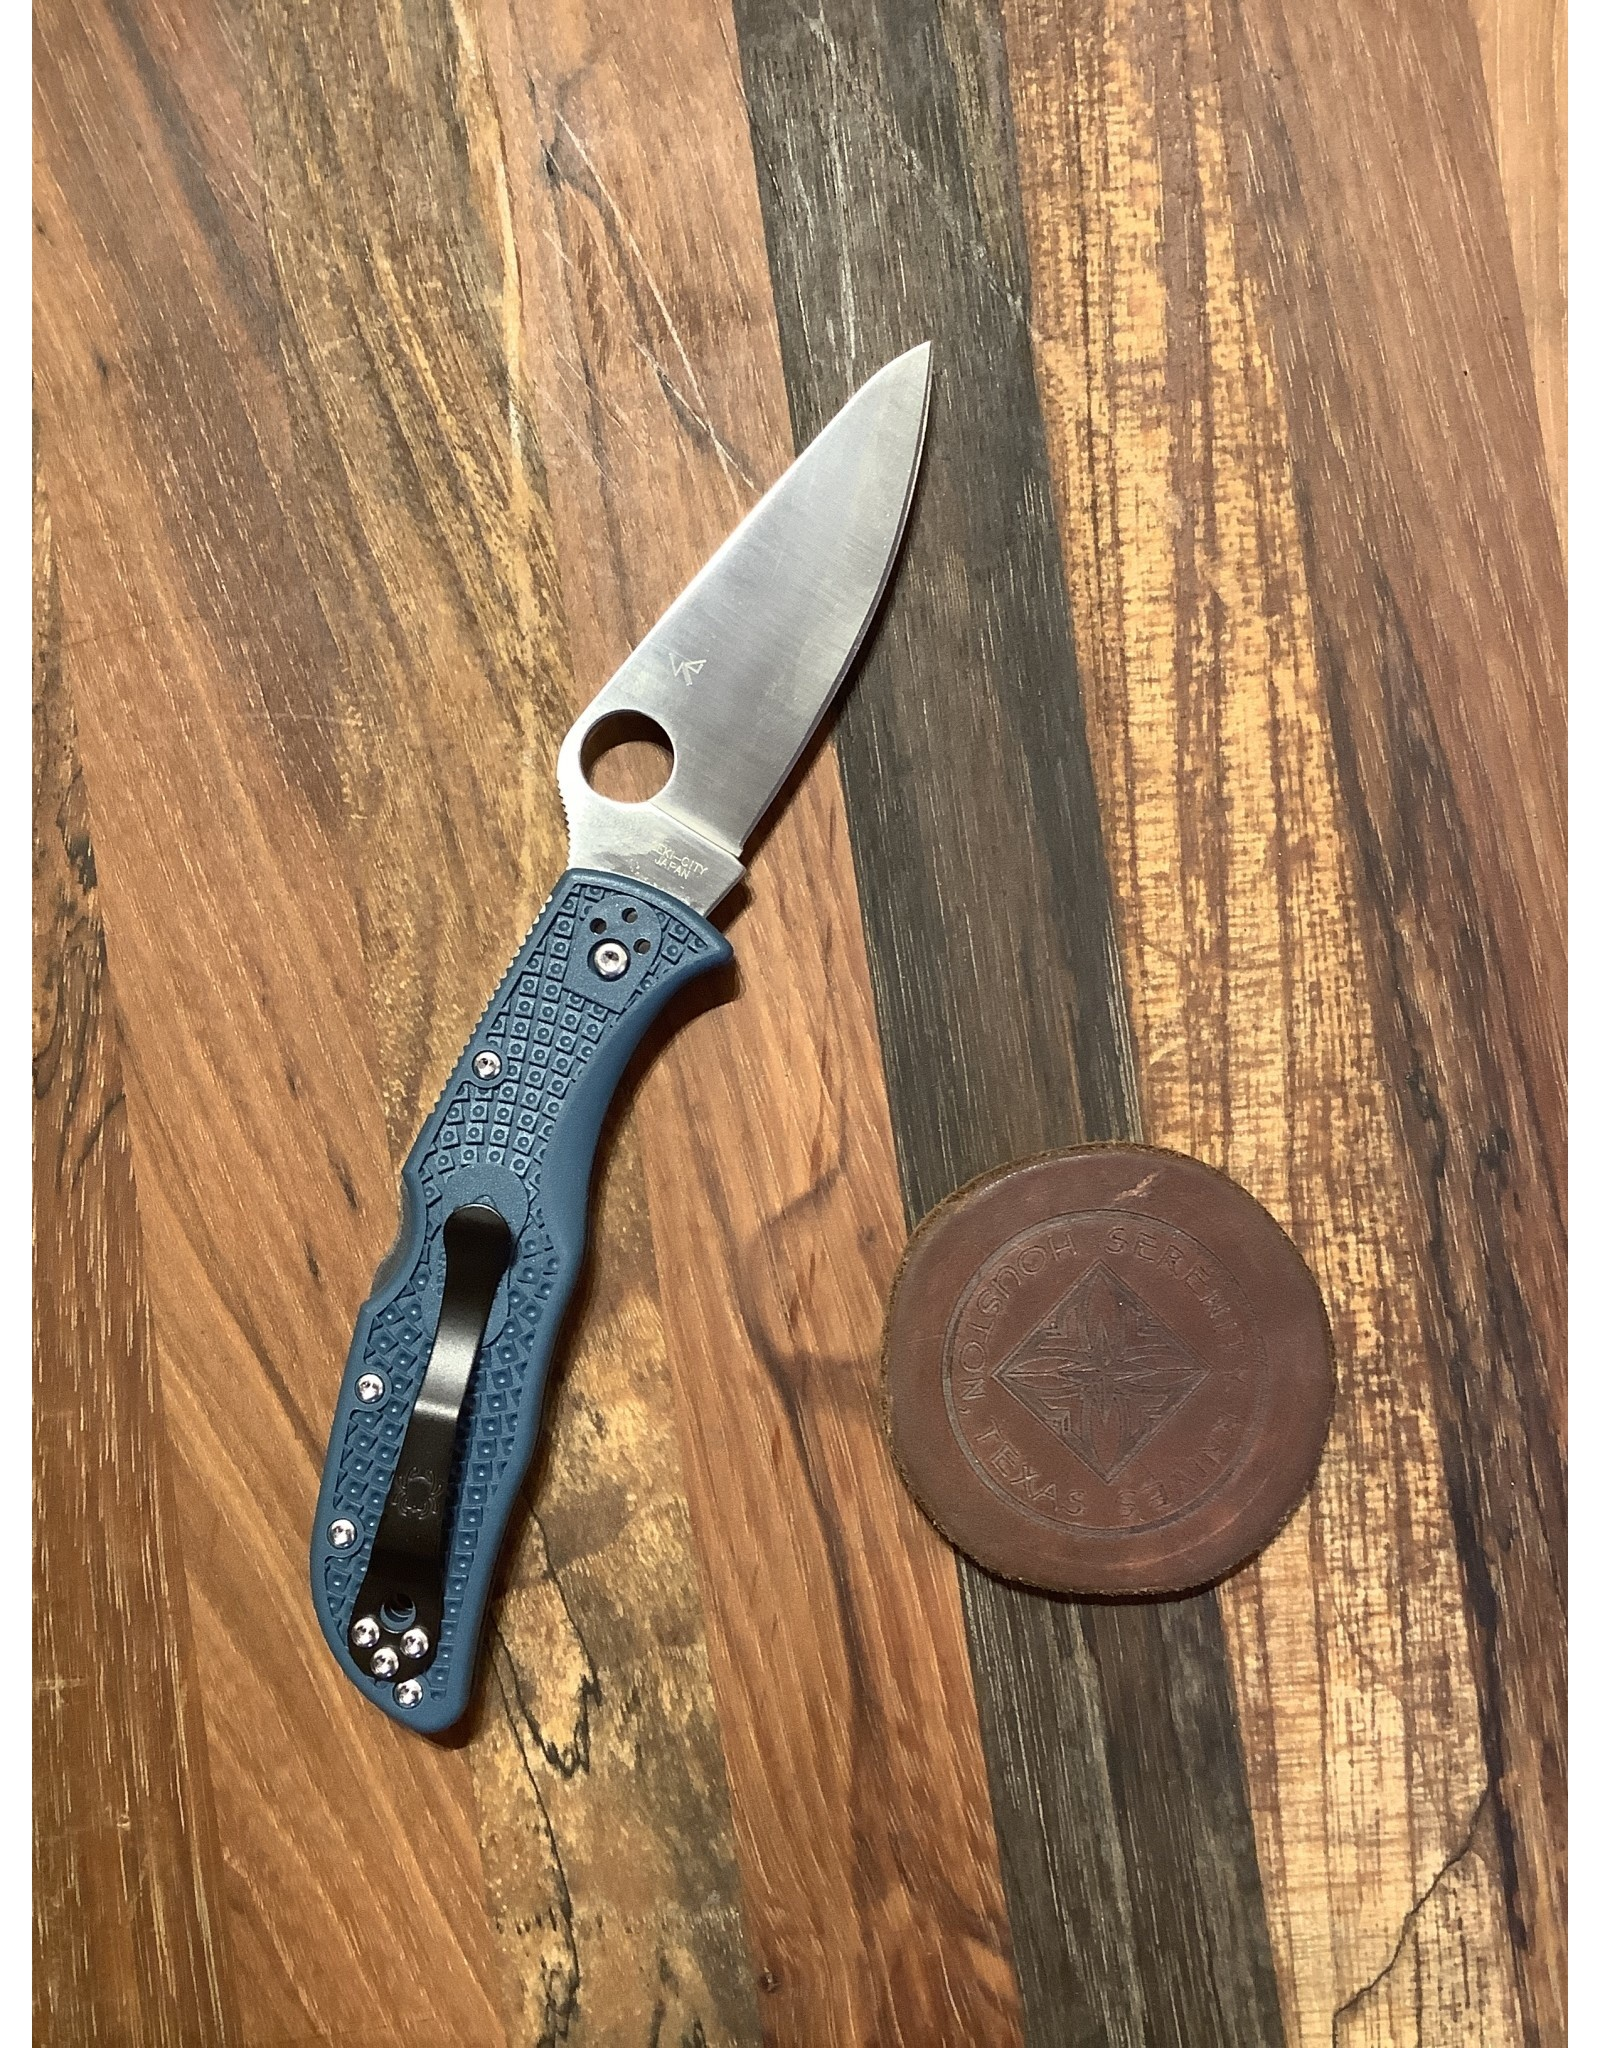 Spyderco Endela with K390 and Blue FRN